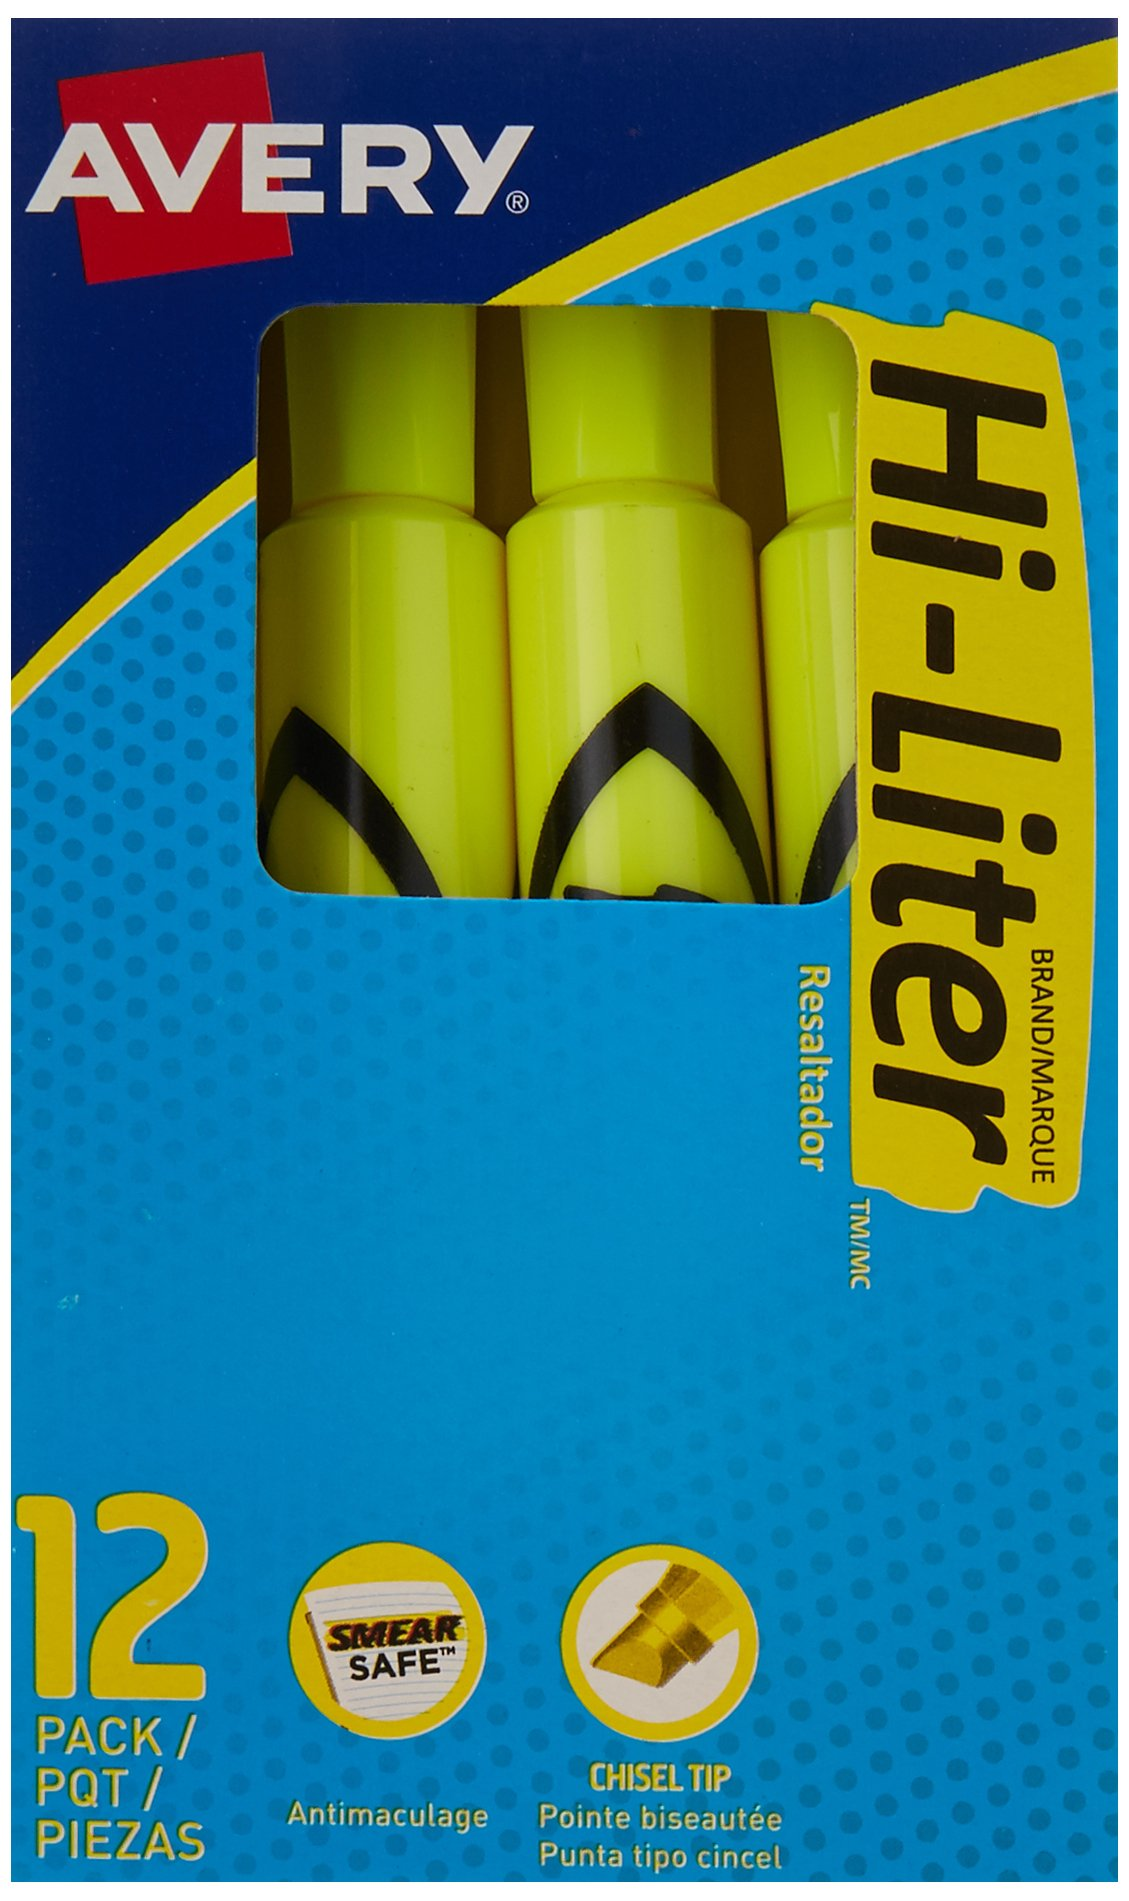 Avery HI-LITER Desk-Style Highlighters, Fl. Yellow, Case Pack of 144 (24000)